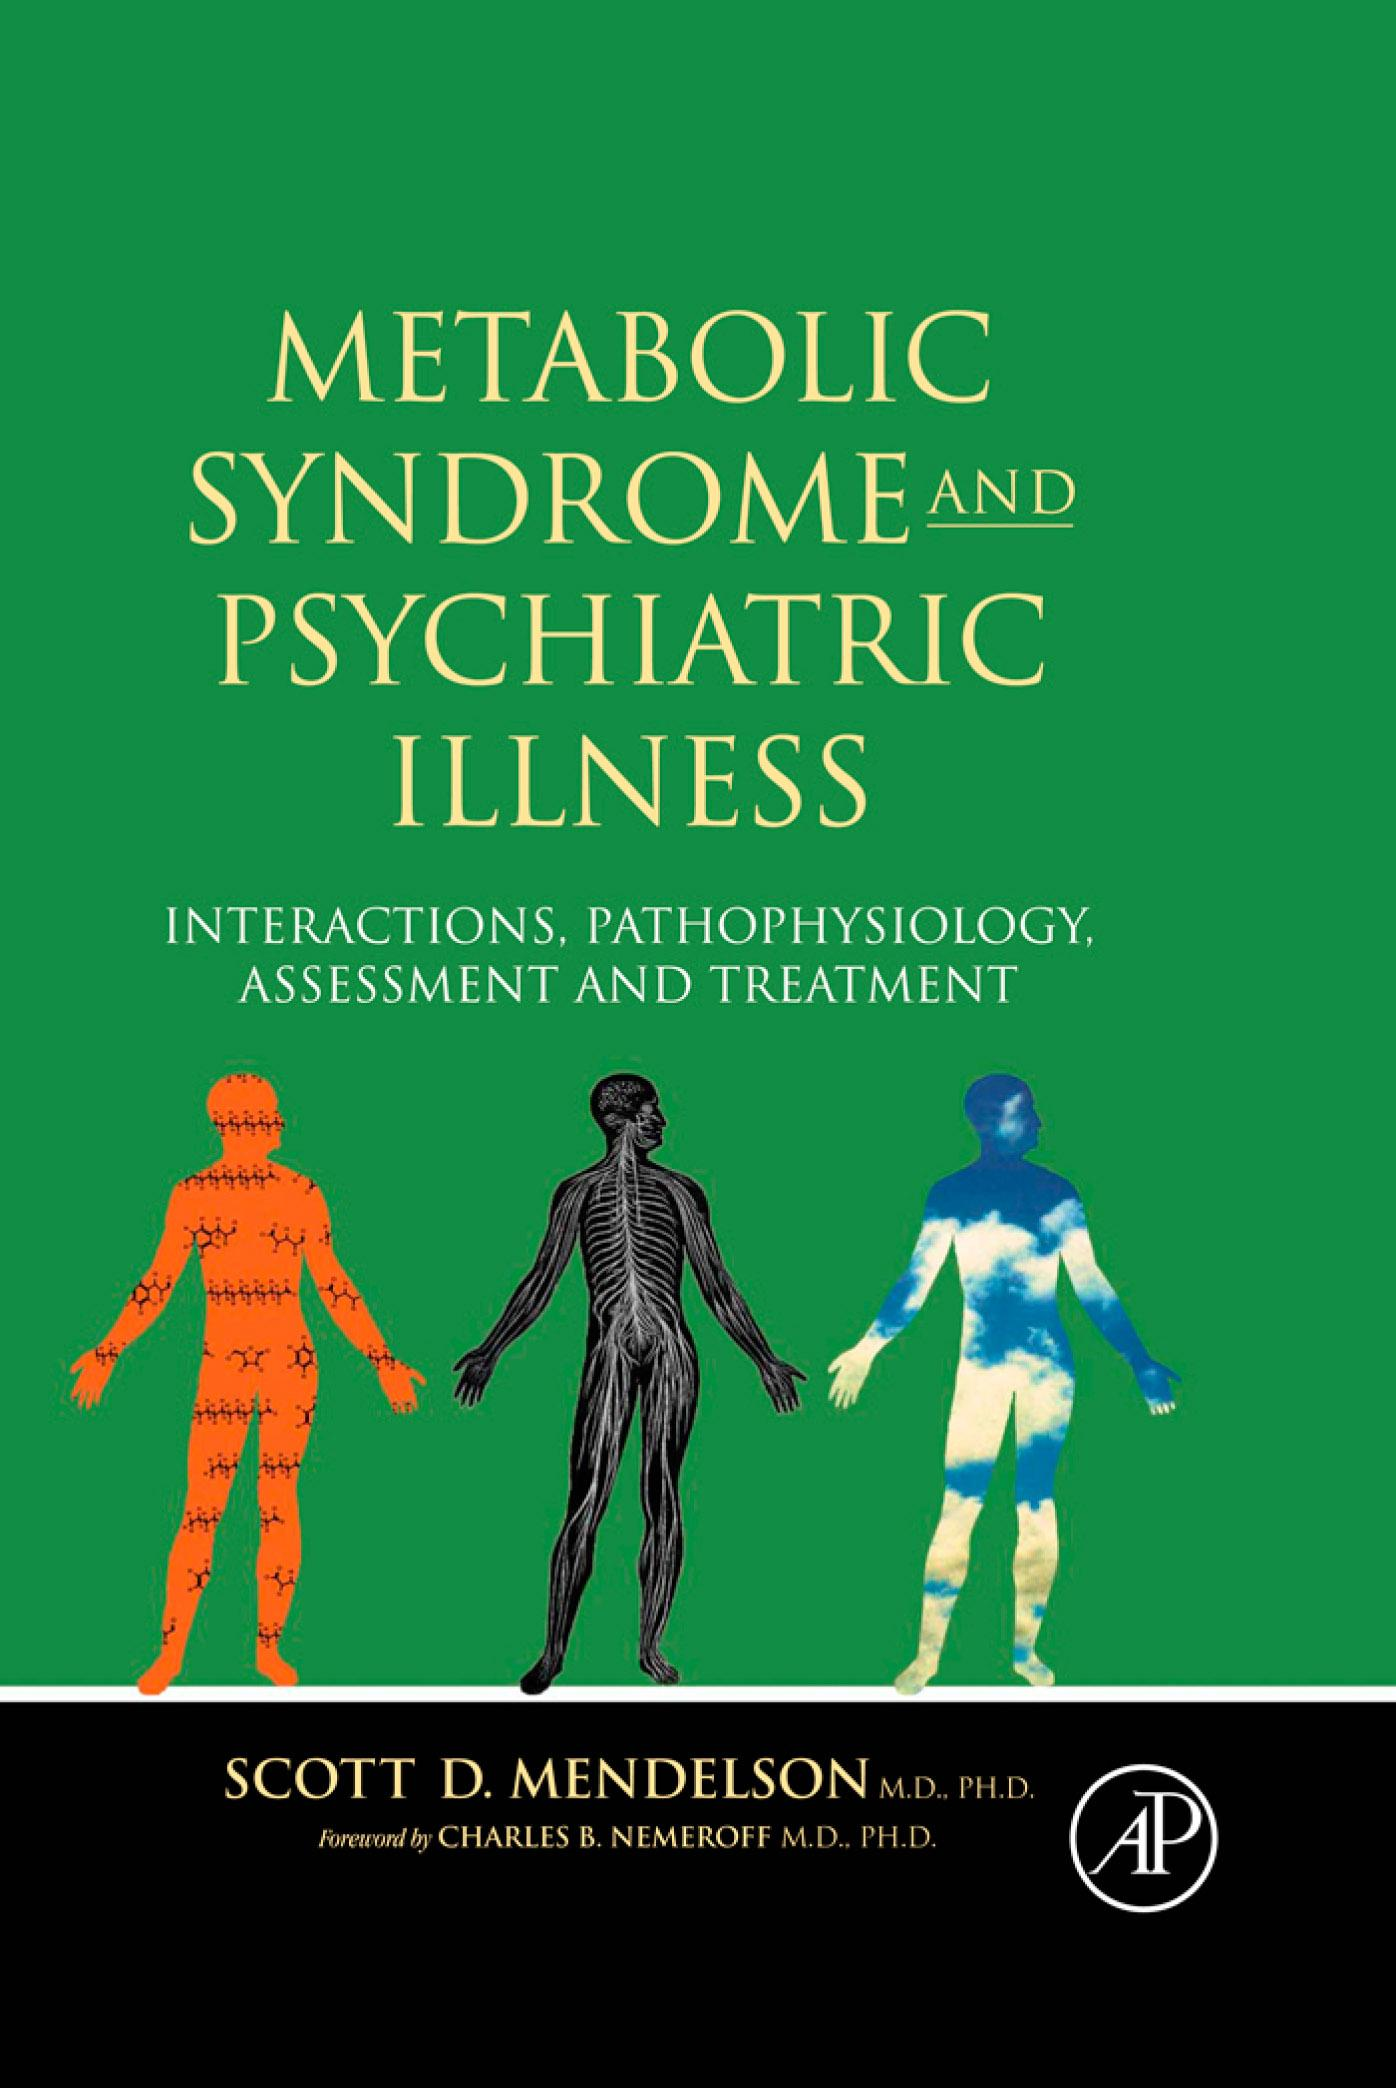 Metabolic Syndrome and Psychiatric Illness: Interactions, Pathophysiology, Assessment & Treatment: Interactions, Pathophysiology, Assessment & Treatme EB9780080556529